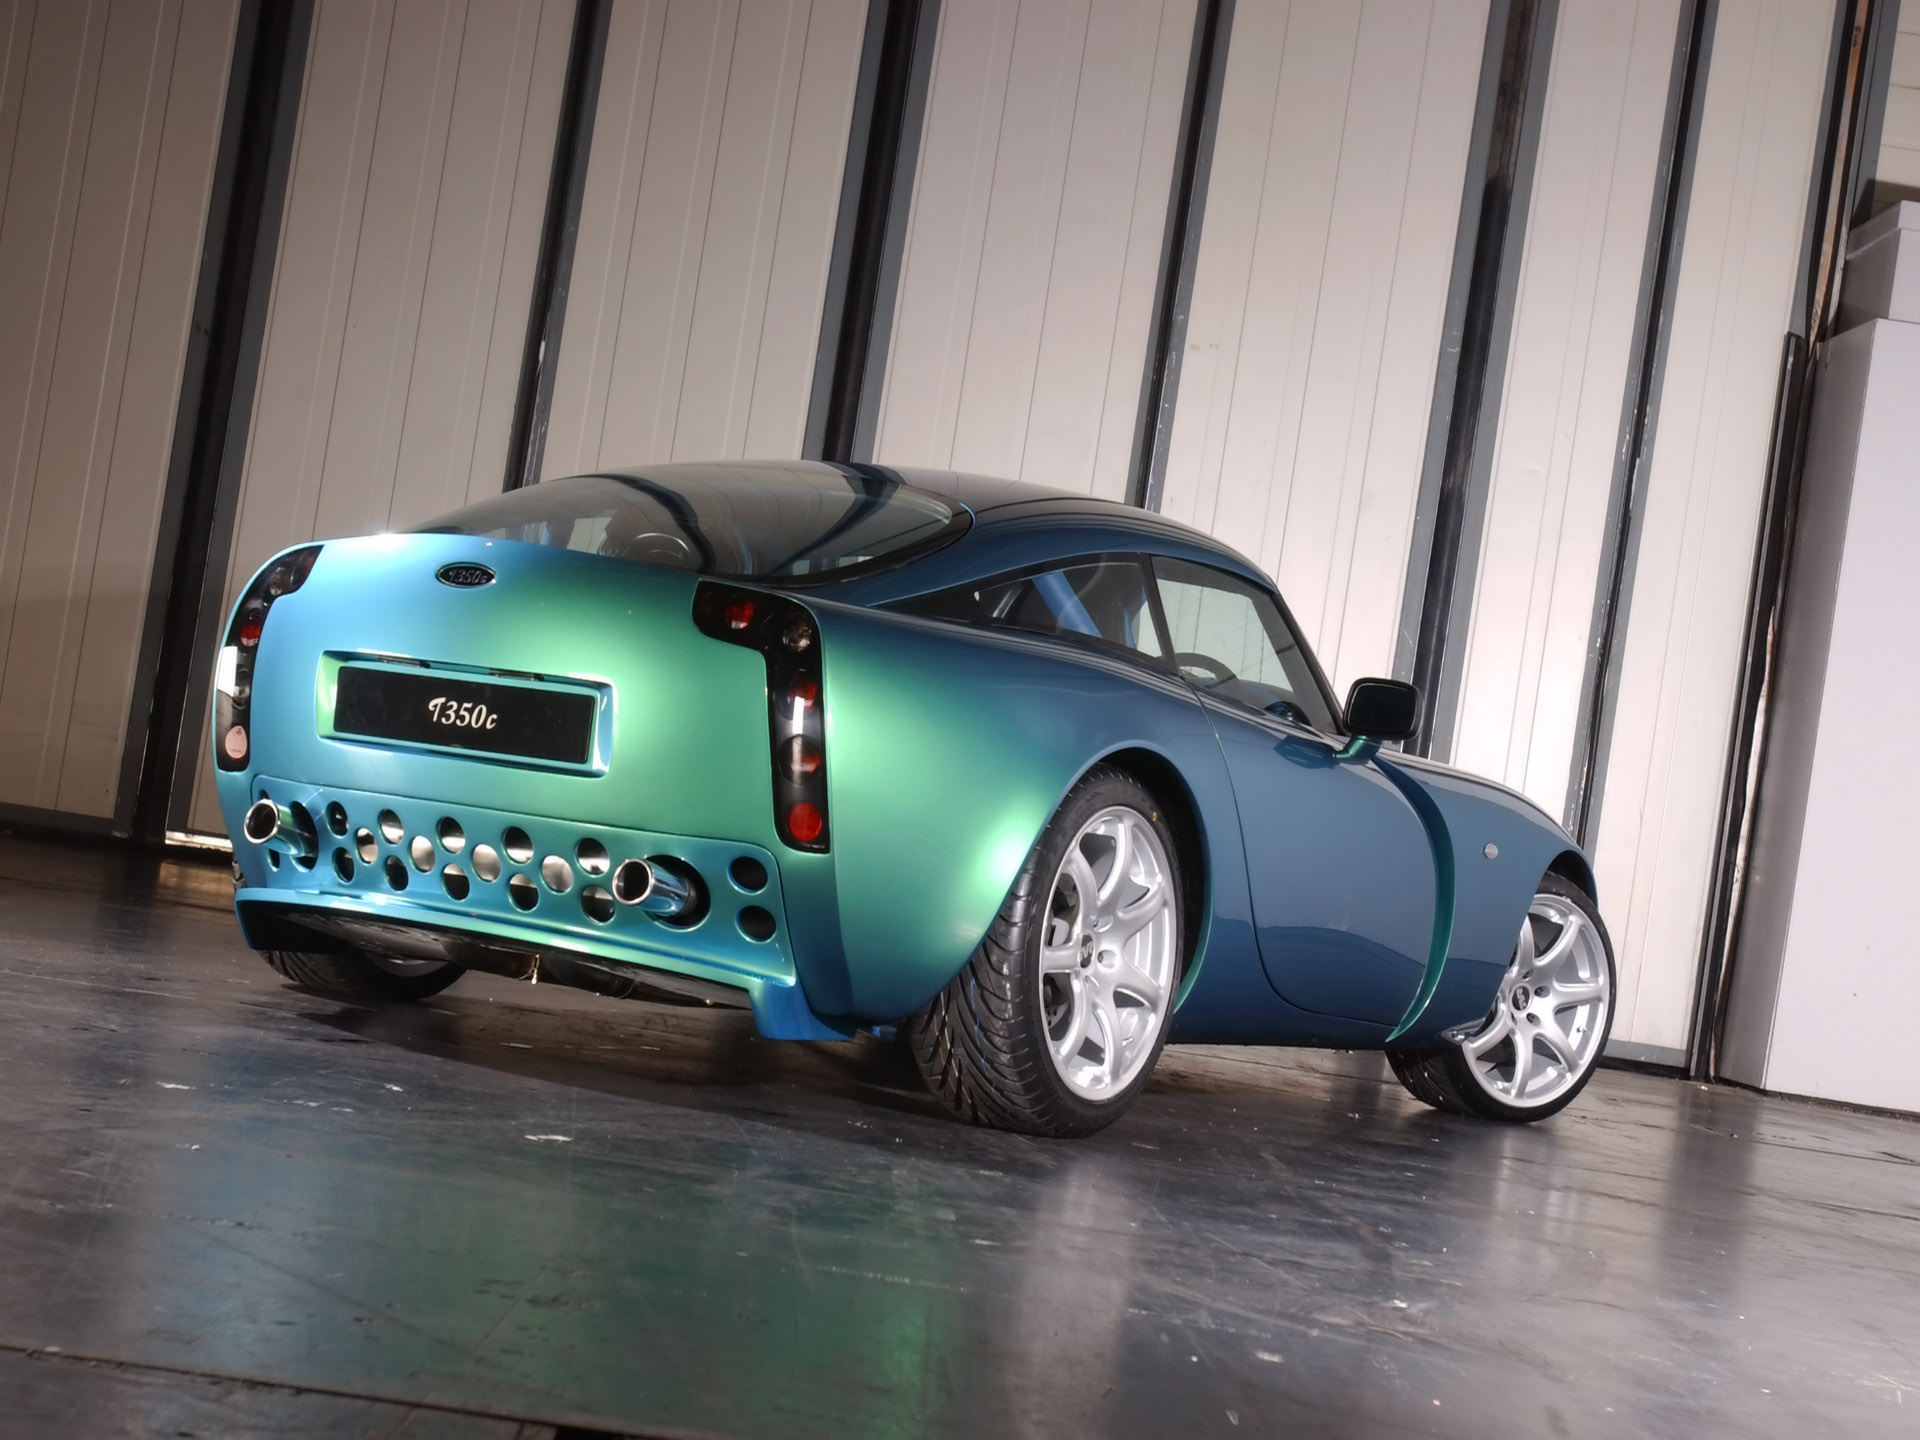 Tvr t350 photo - 7